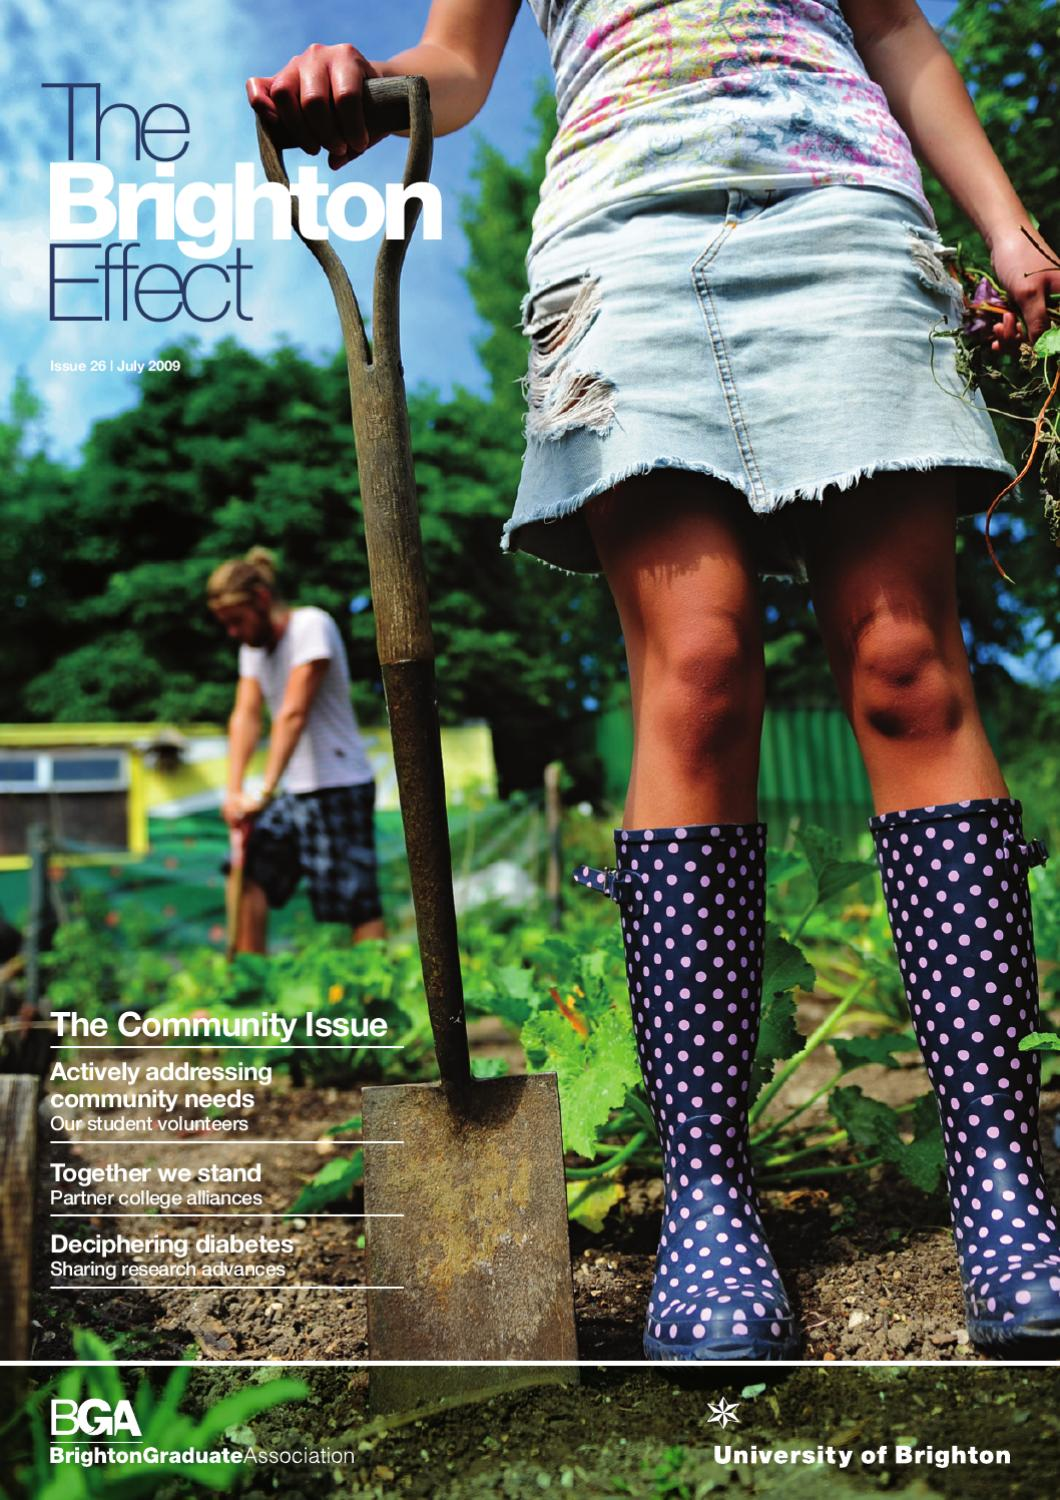 The Brighton Effect Magazine July 2009 by University of Brighton ...